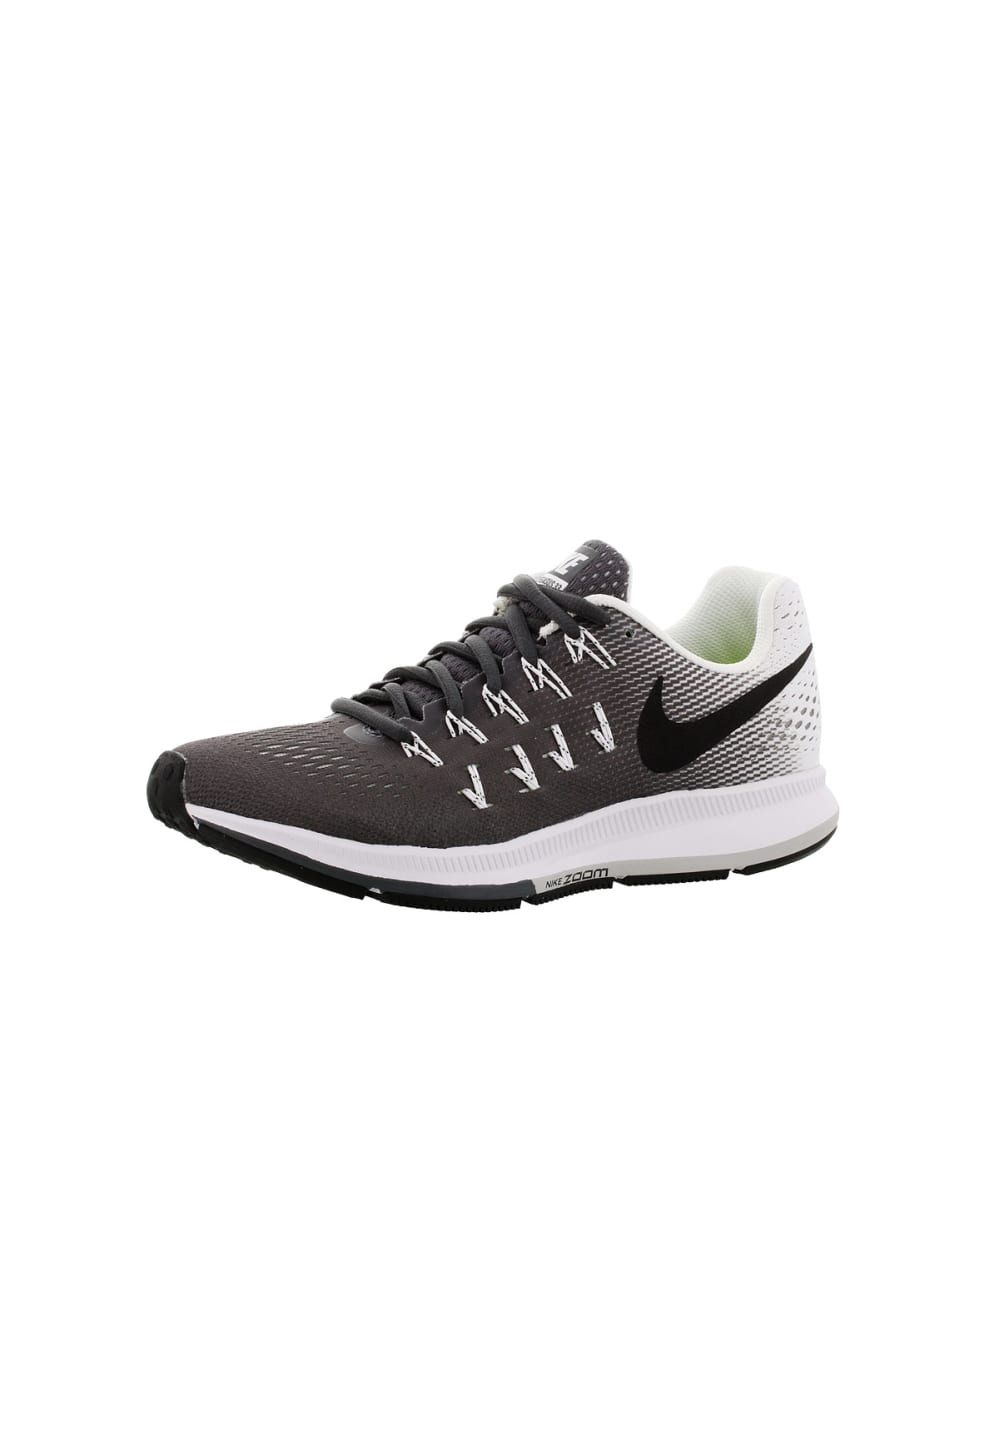 info for e812c b6d3e Next. Nike. Air Zoom Pegasus 33 - Running ...